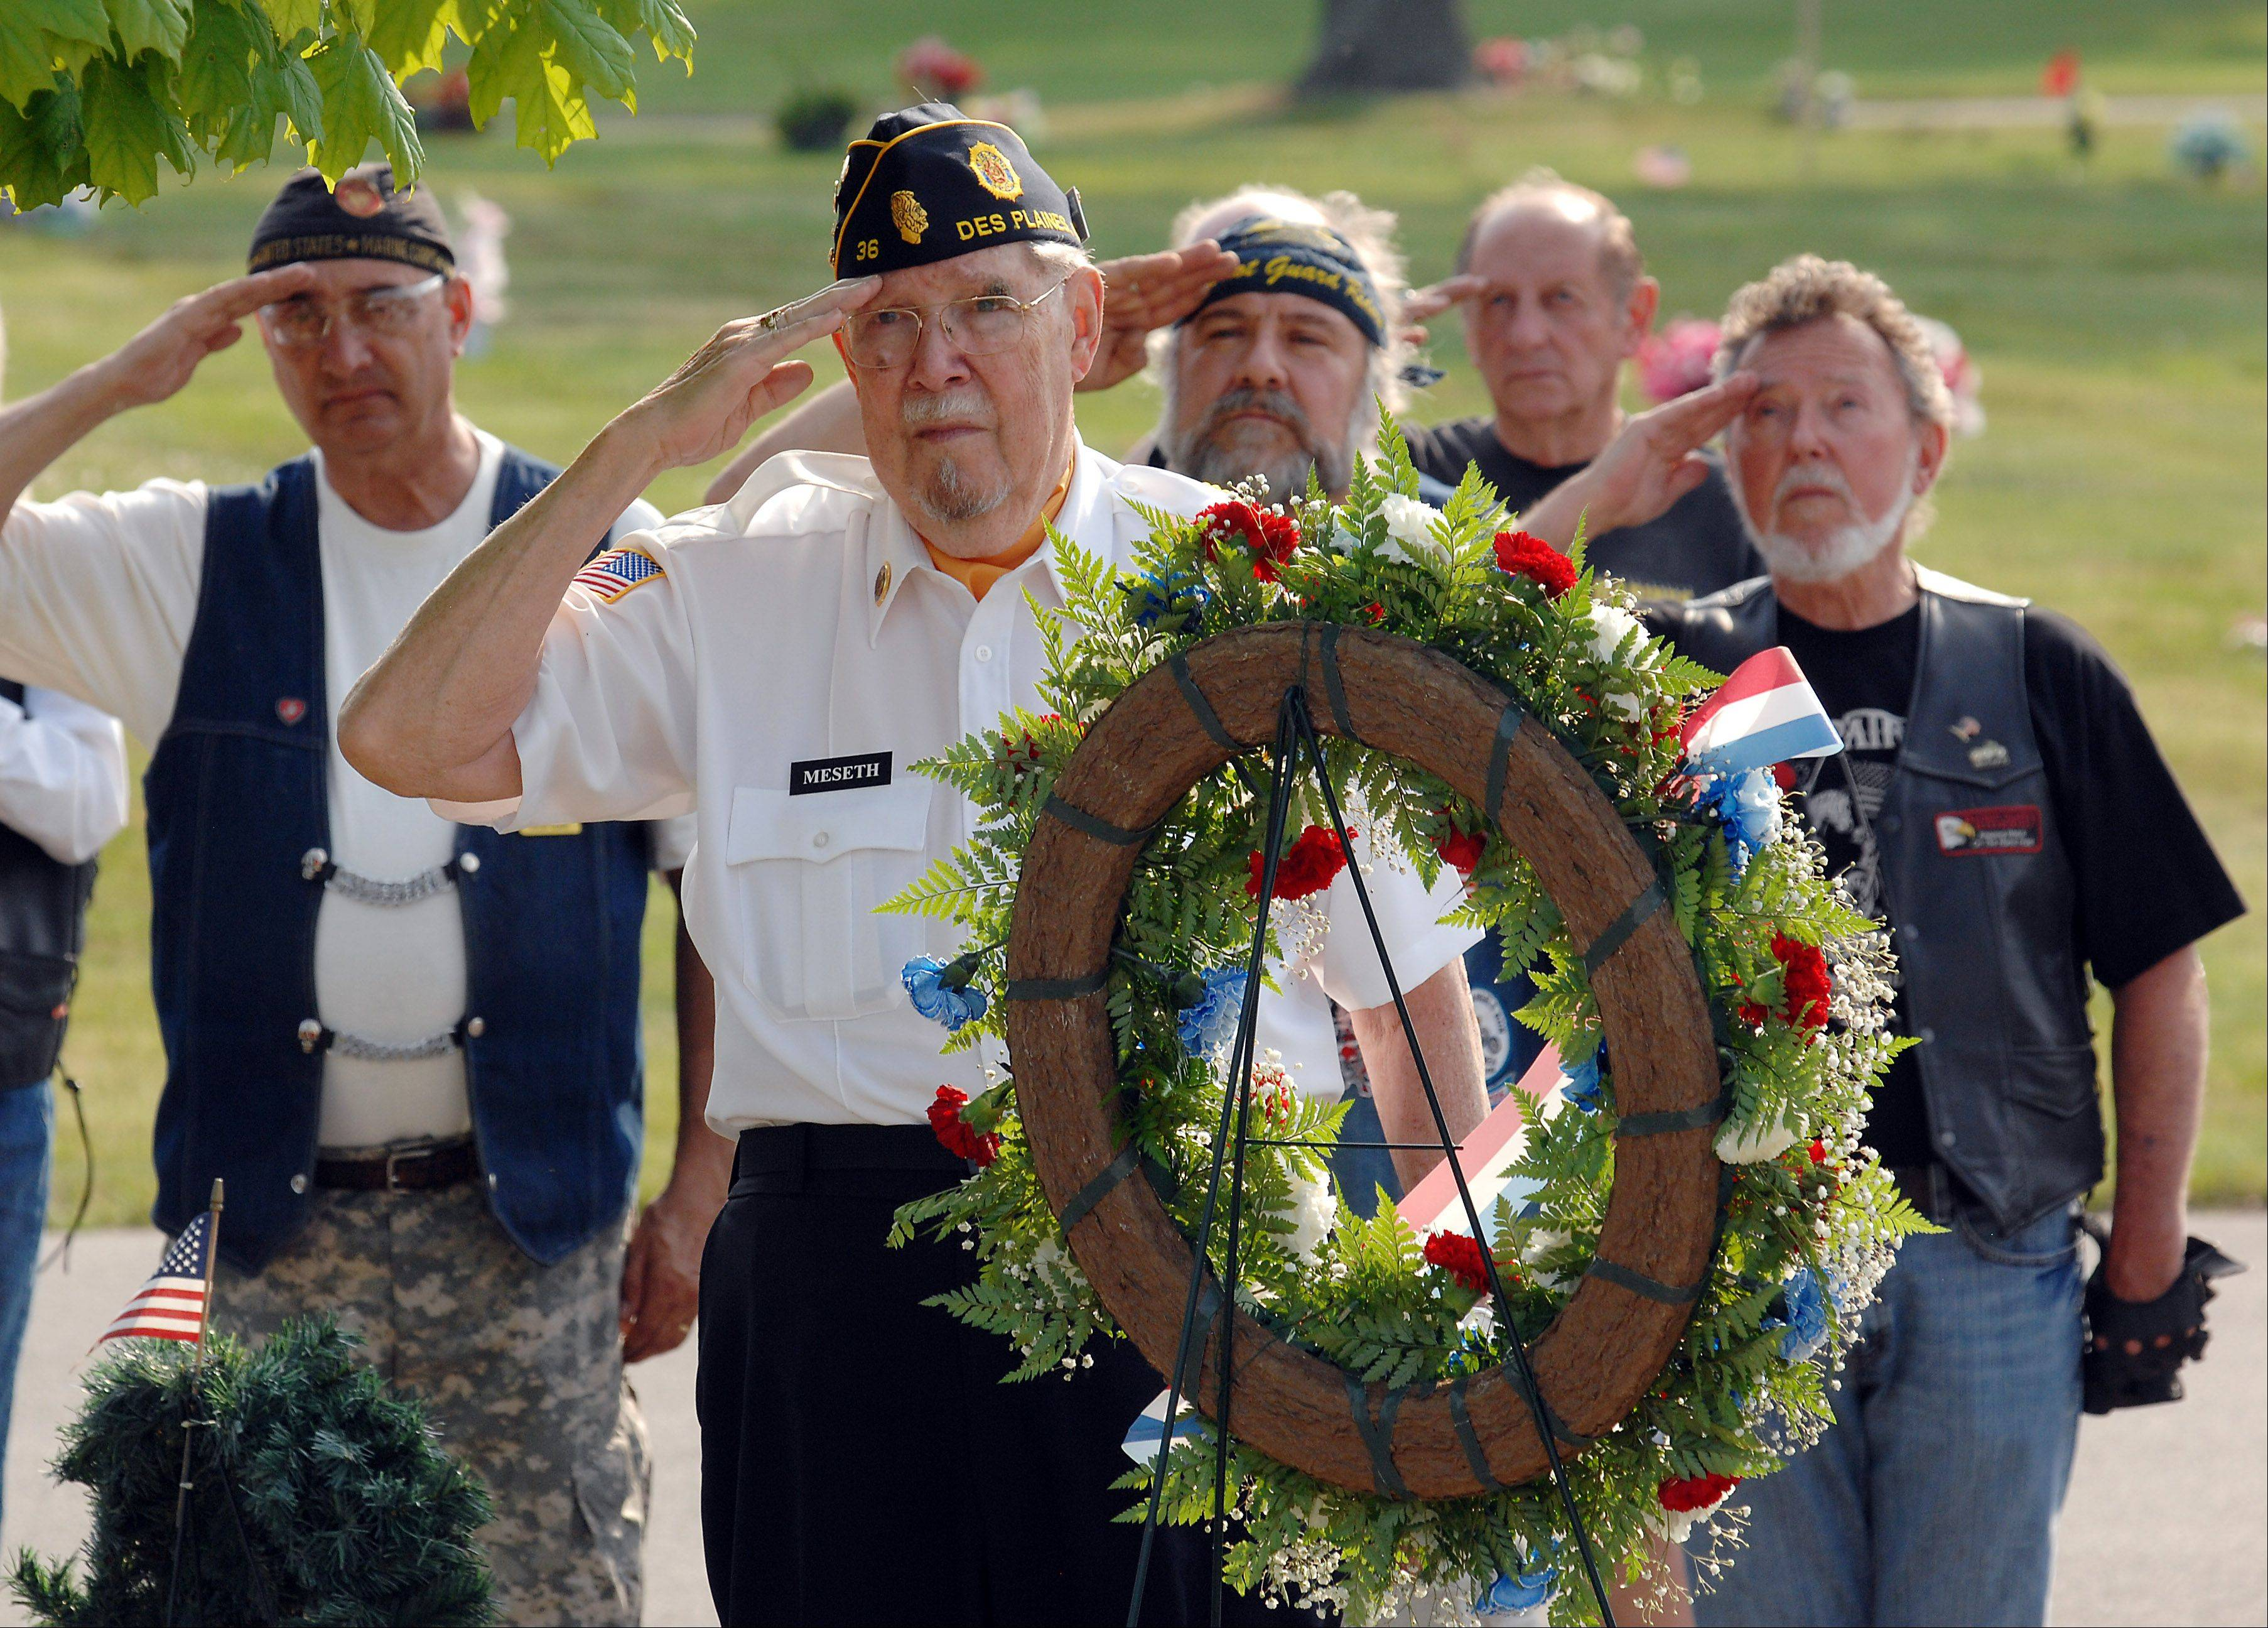 American Legion Post 36 Officer Don Meseth prepares to lay a wreath at the Memorial Day ceremony at All Saints Cemetery in Des Plaines on Monday.